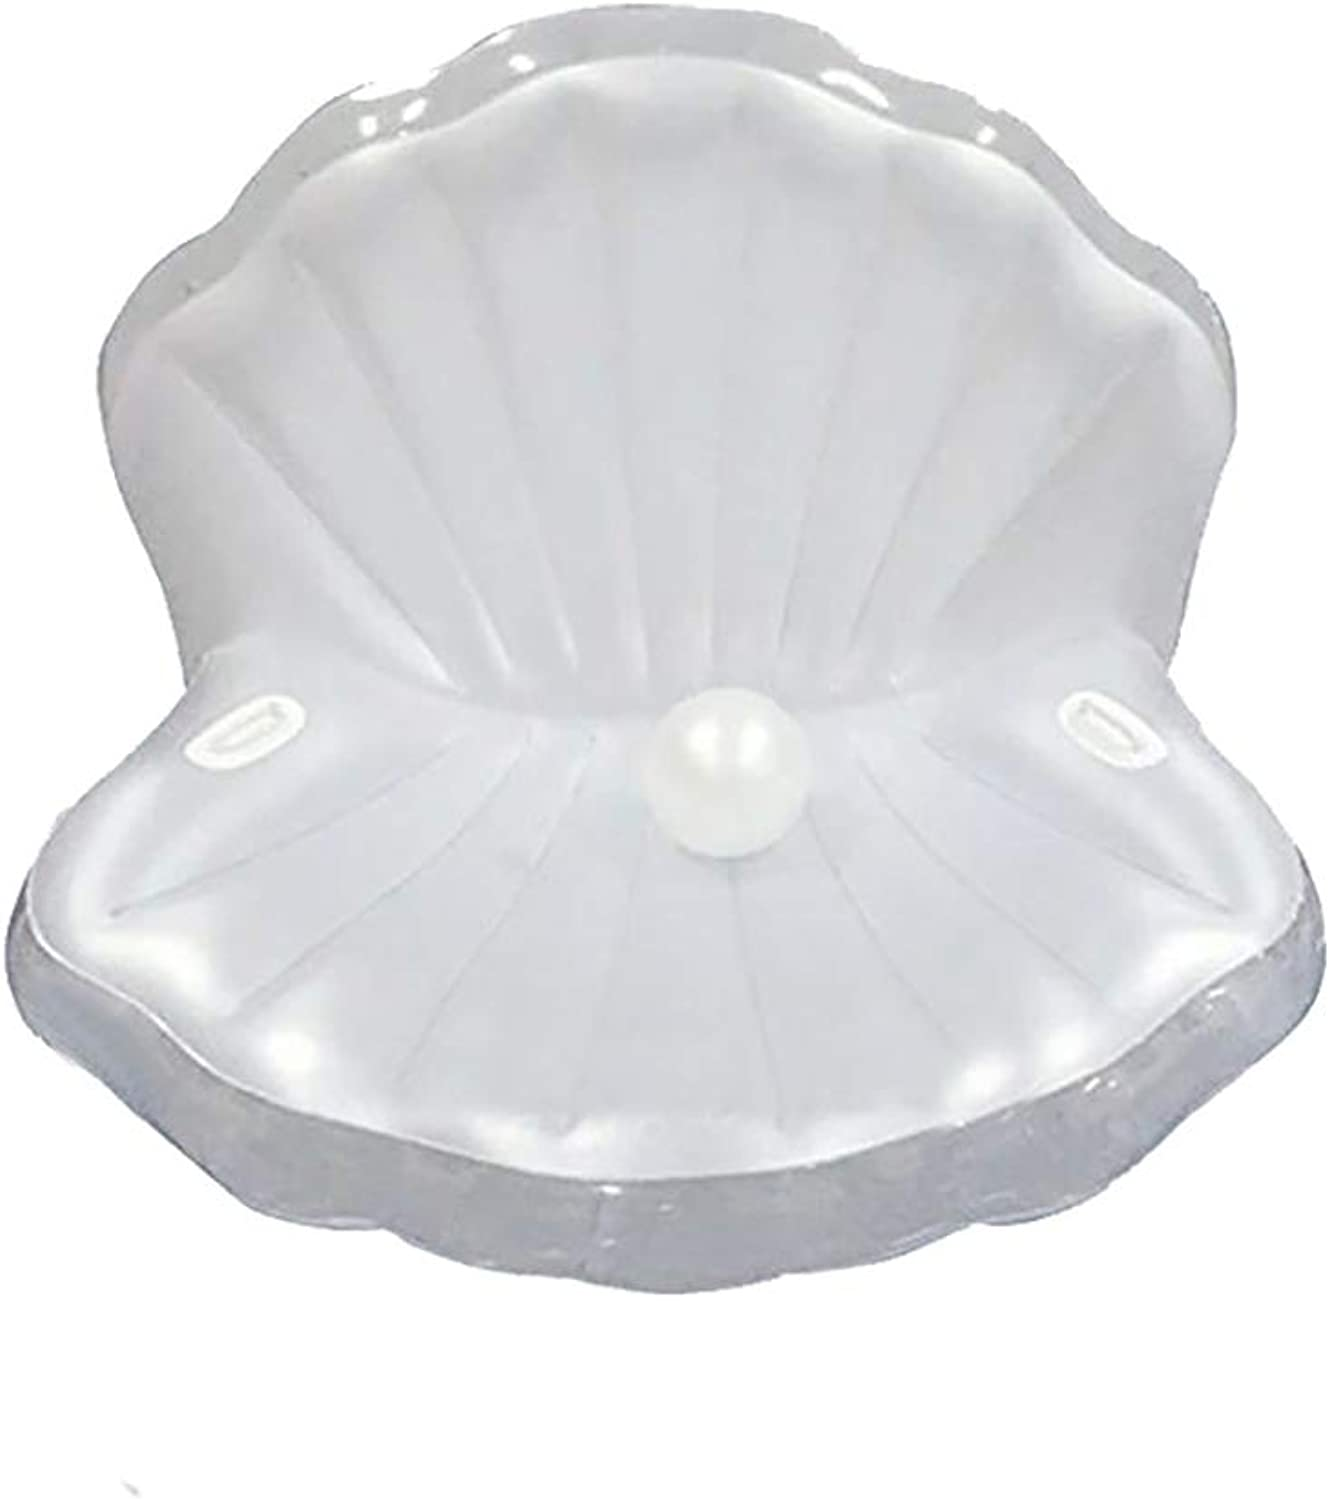 White Shell Floating Row Adult Shell Water Inflatable Cushion Swimming Bed Mermaid Floating Row Inflatable Boat